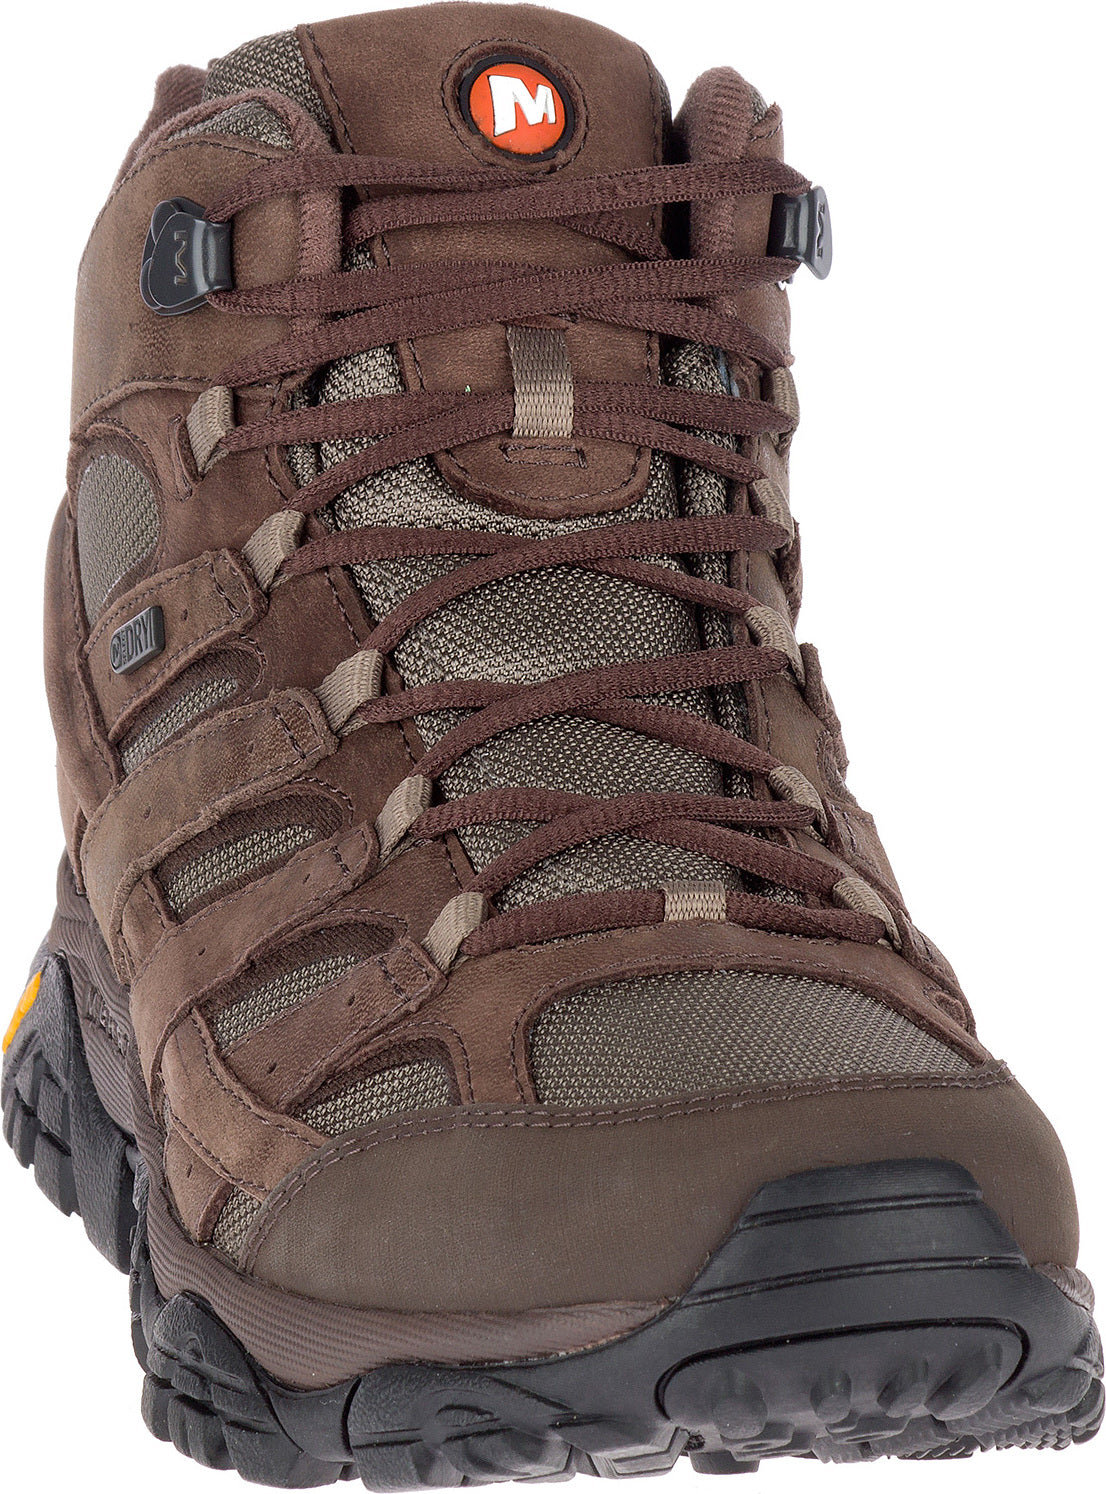 7484803d0cdf Merrell Moab 2 Smooth Mid Waterproof Hiking Boots - Men s